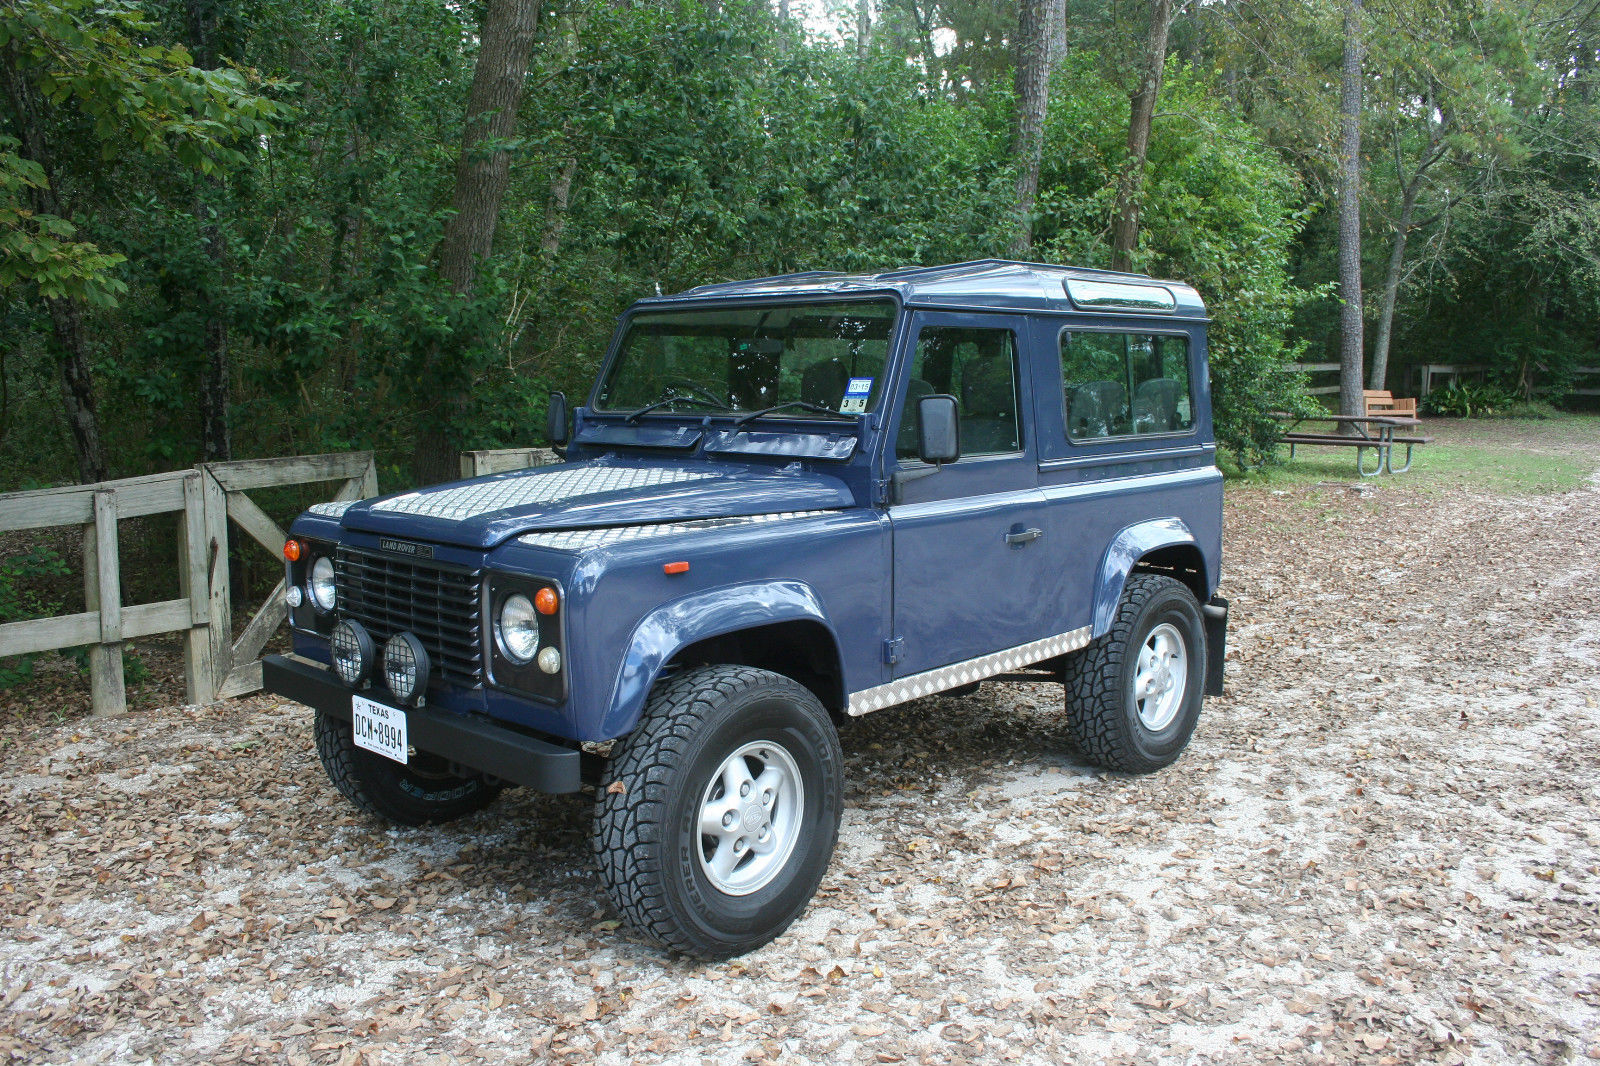 1988 land rover defender 90 newly rebuilt motor for sale in friendswood texas united states. Black Bedroom Furniture Sets. Home Design Ideas